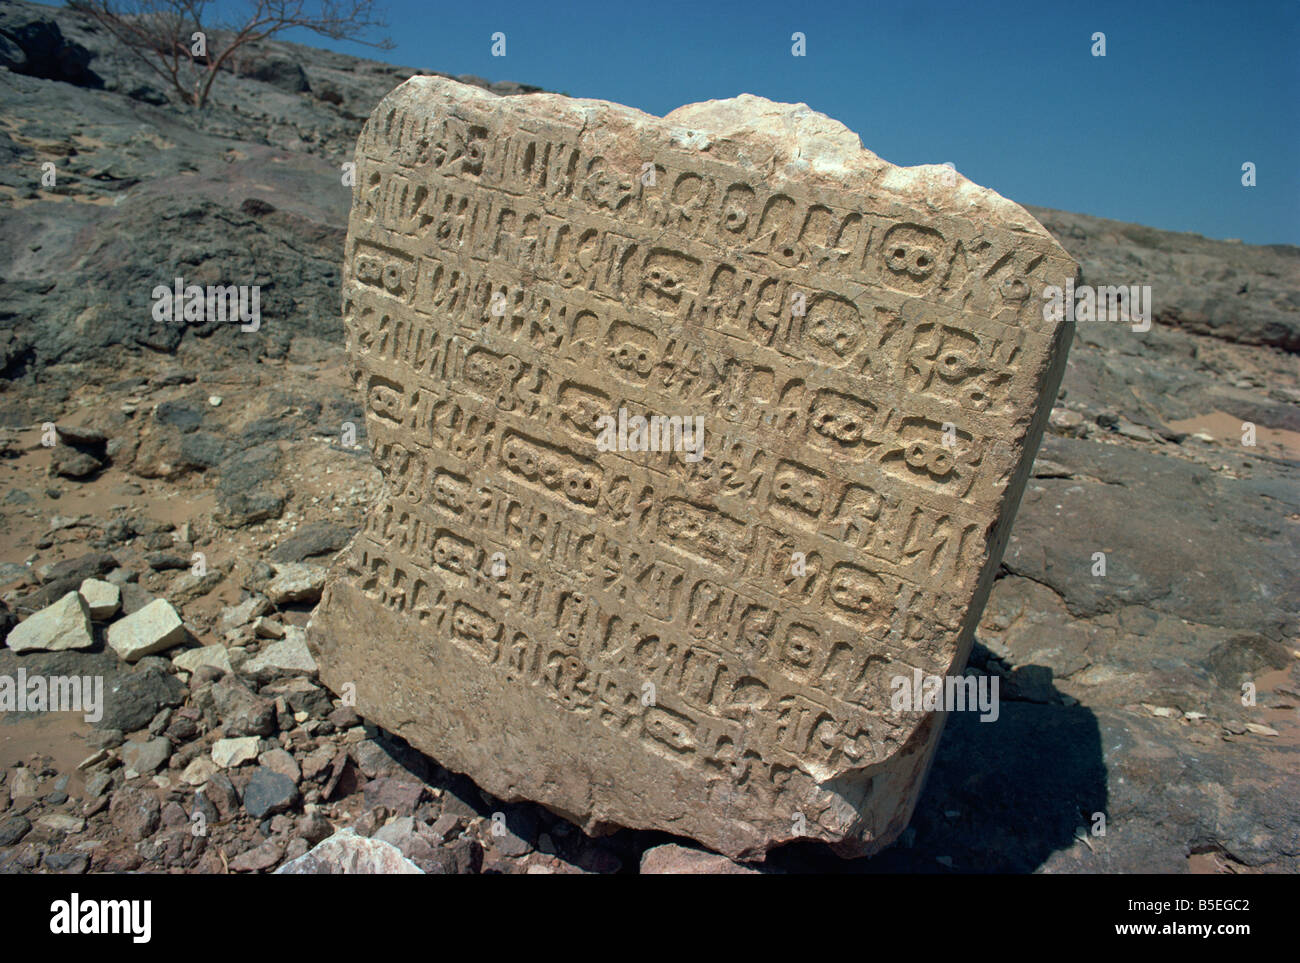 Himyaritic inscriptions in stone fragment, near the Marib Dam, Yemen, Middle East - Stock Image